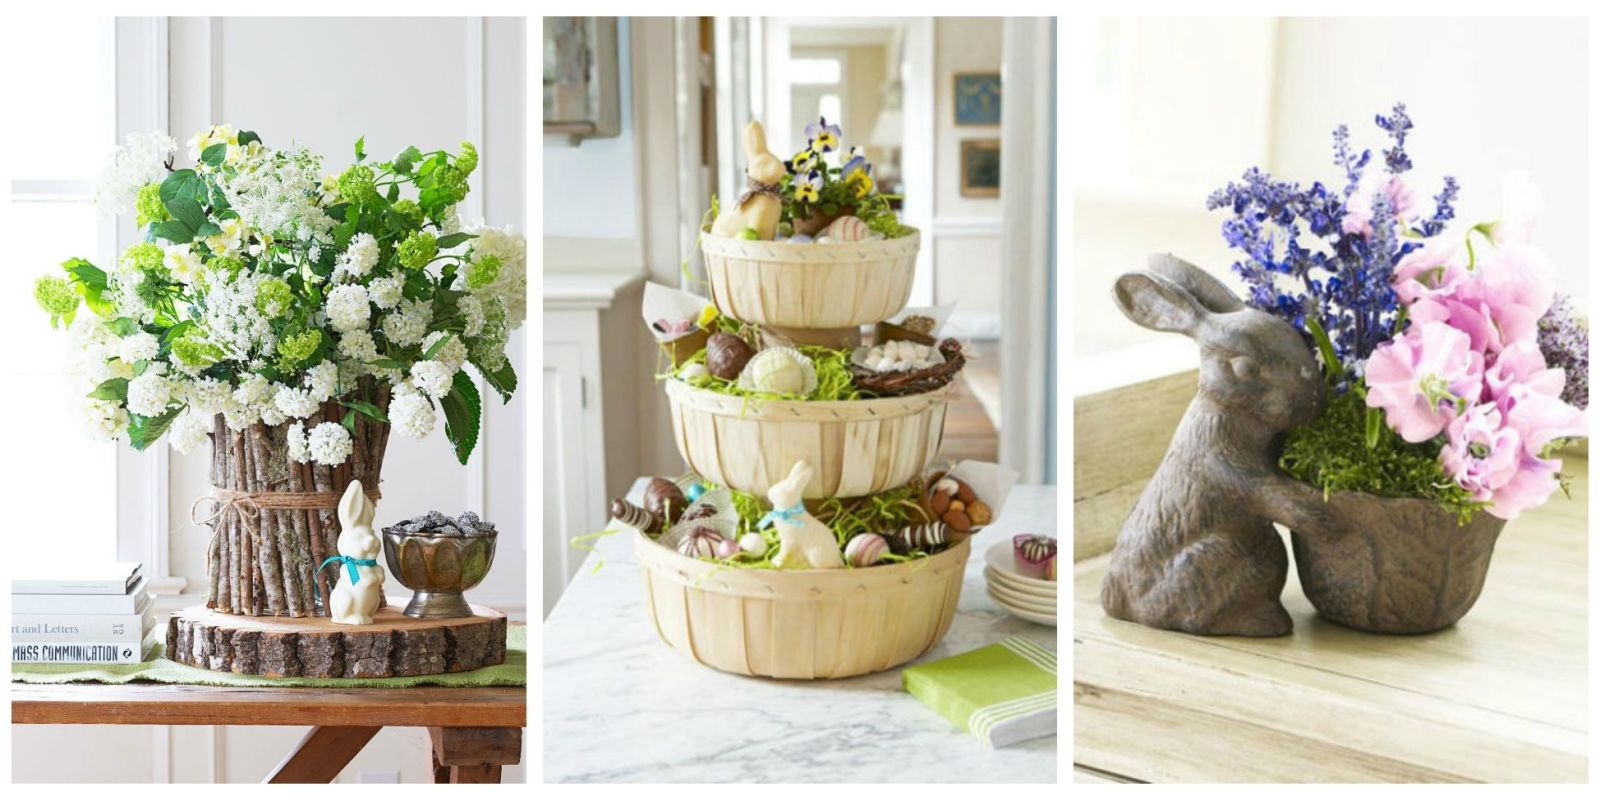 70 Diy Easter Decorations Ideas For Homemade Easter Table And Home Decor